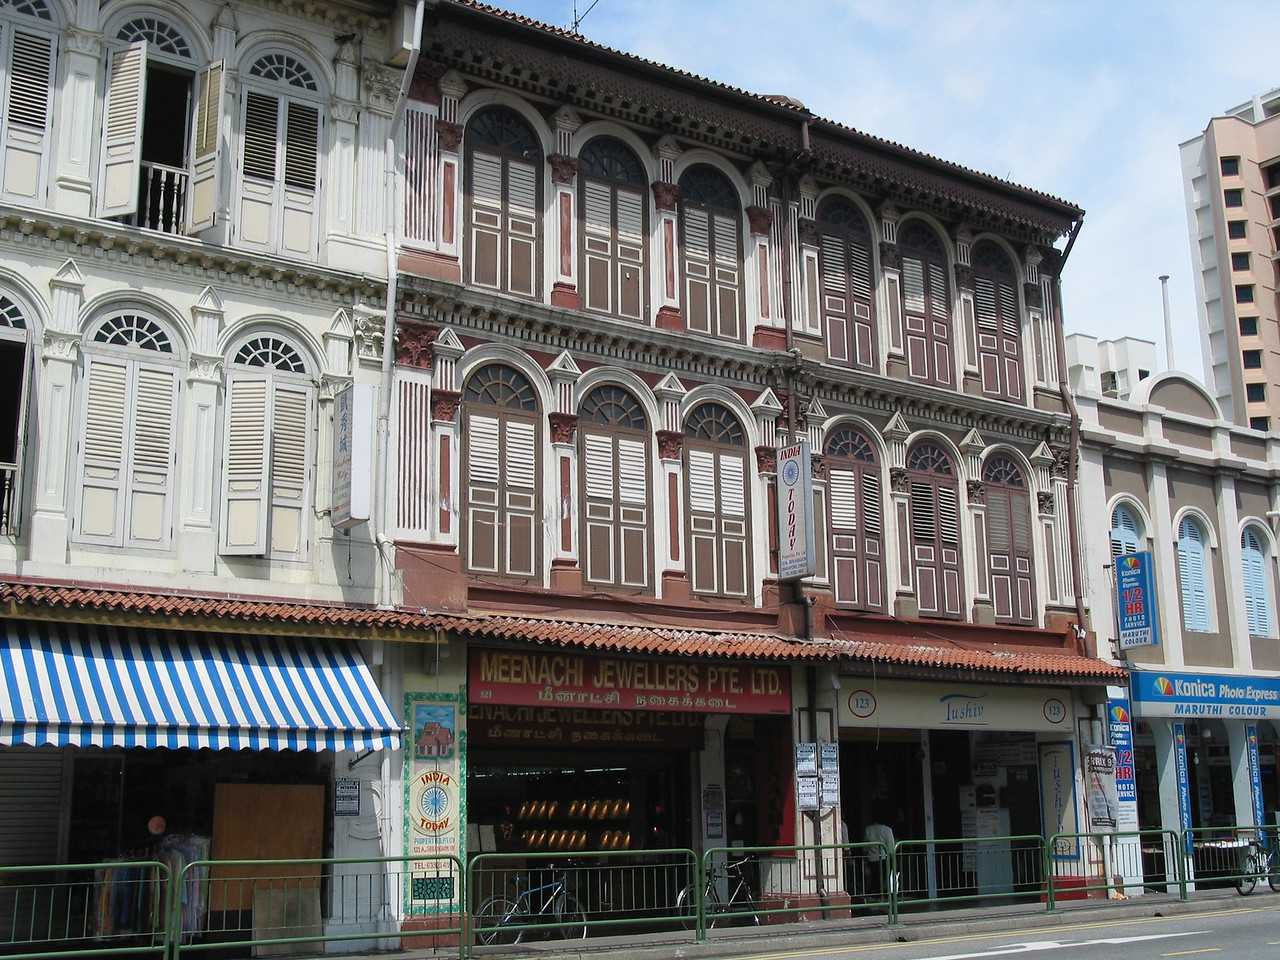 Shophouses are one of the most significant building types in Singapore's architectural heritage, reflecting much of the island's history and development.<br /> Shophouses are mainly narrow, small-scaled terrace structures that were built to accommodate both work and dwelling back in the early 19th century.